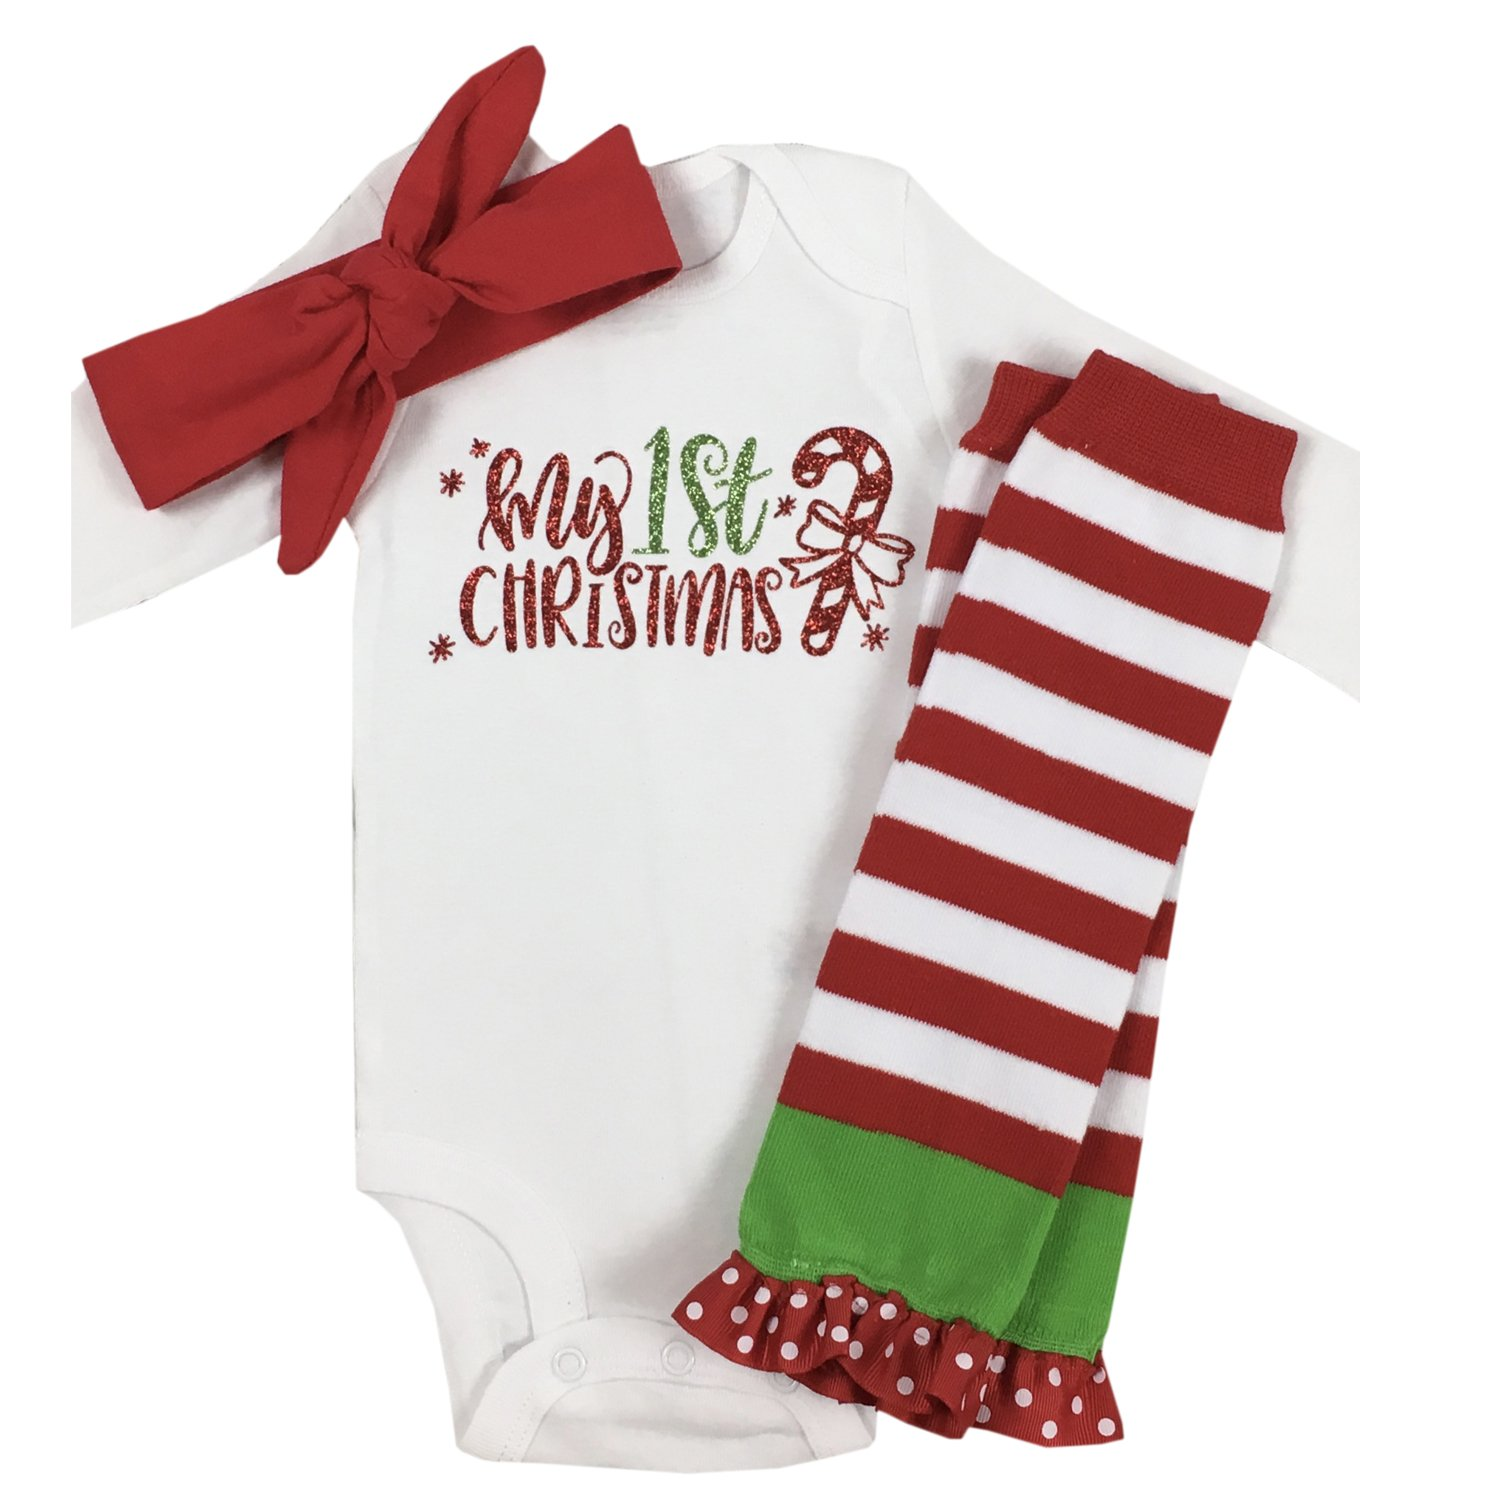 c11f795a0051 Amazon.com: Simply Swanky Baby Girl First Christmas Outfit My First  Christmas Baby Girl Christmas Clothes: Clothing